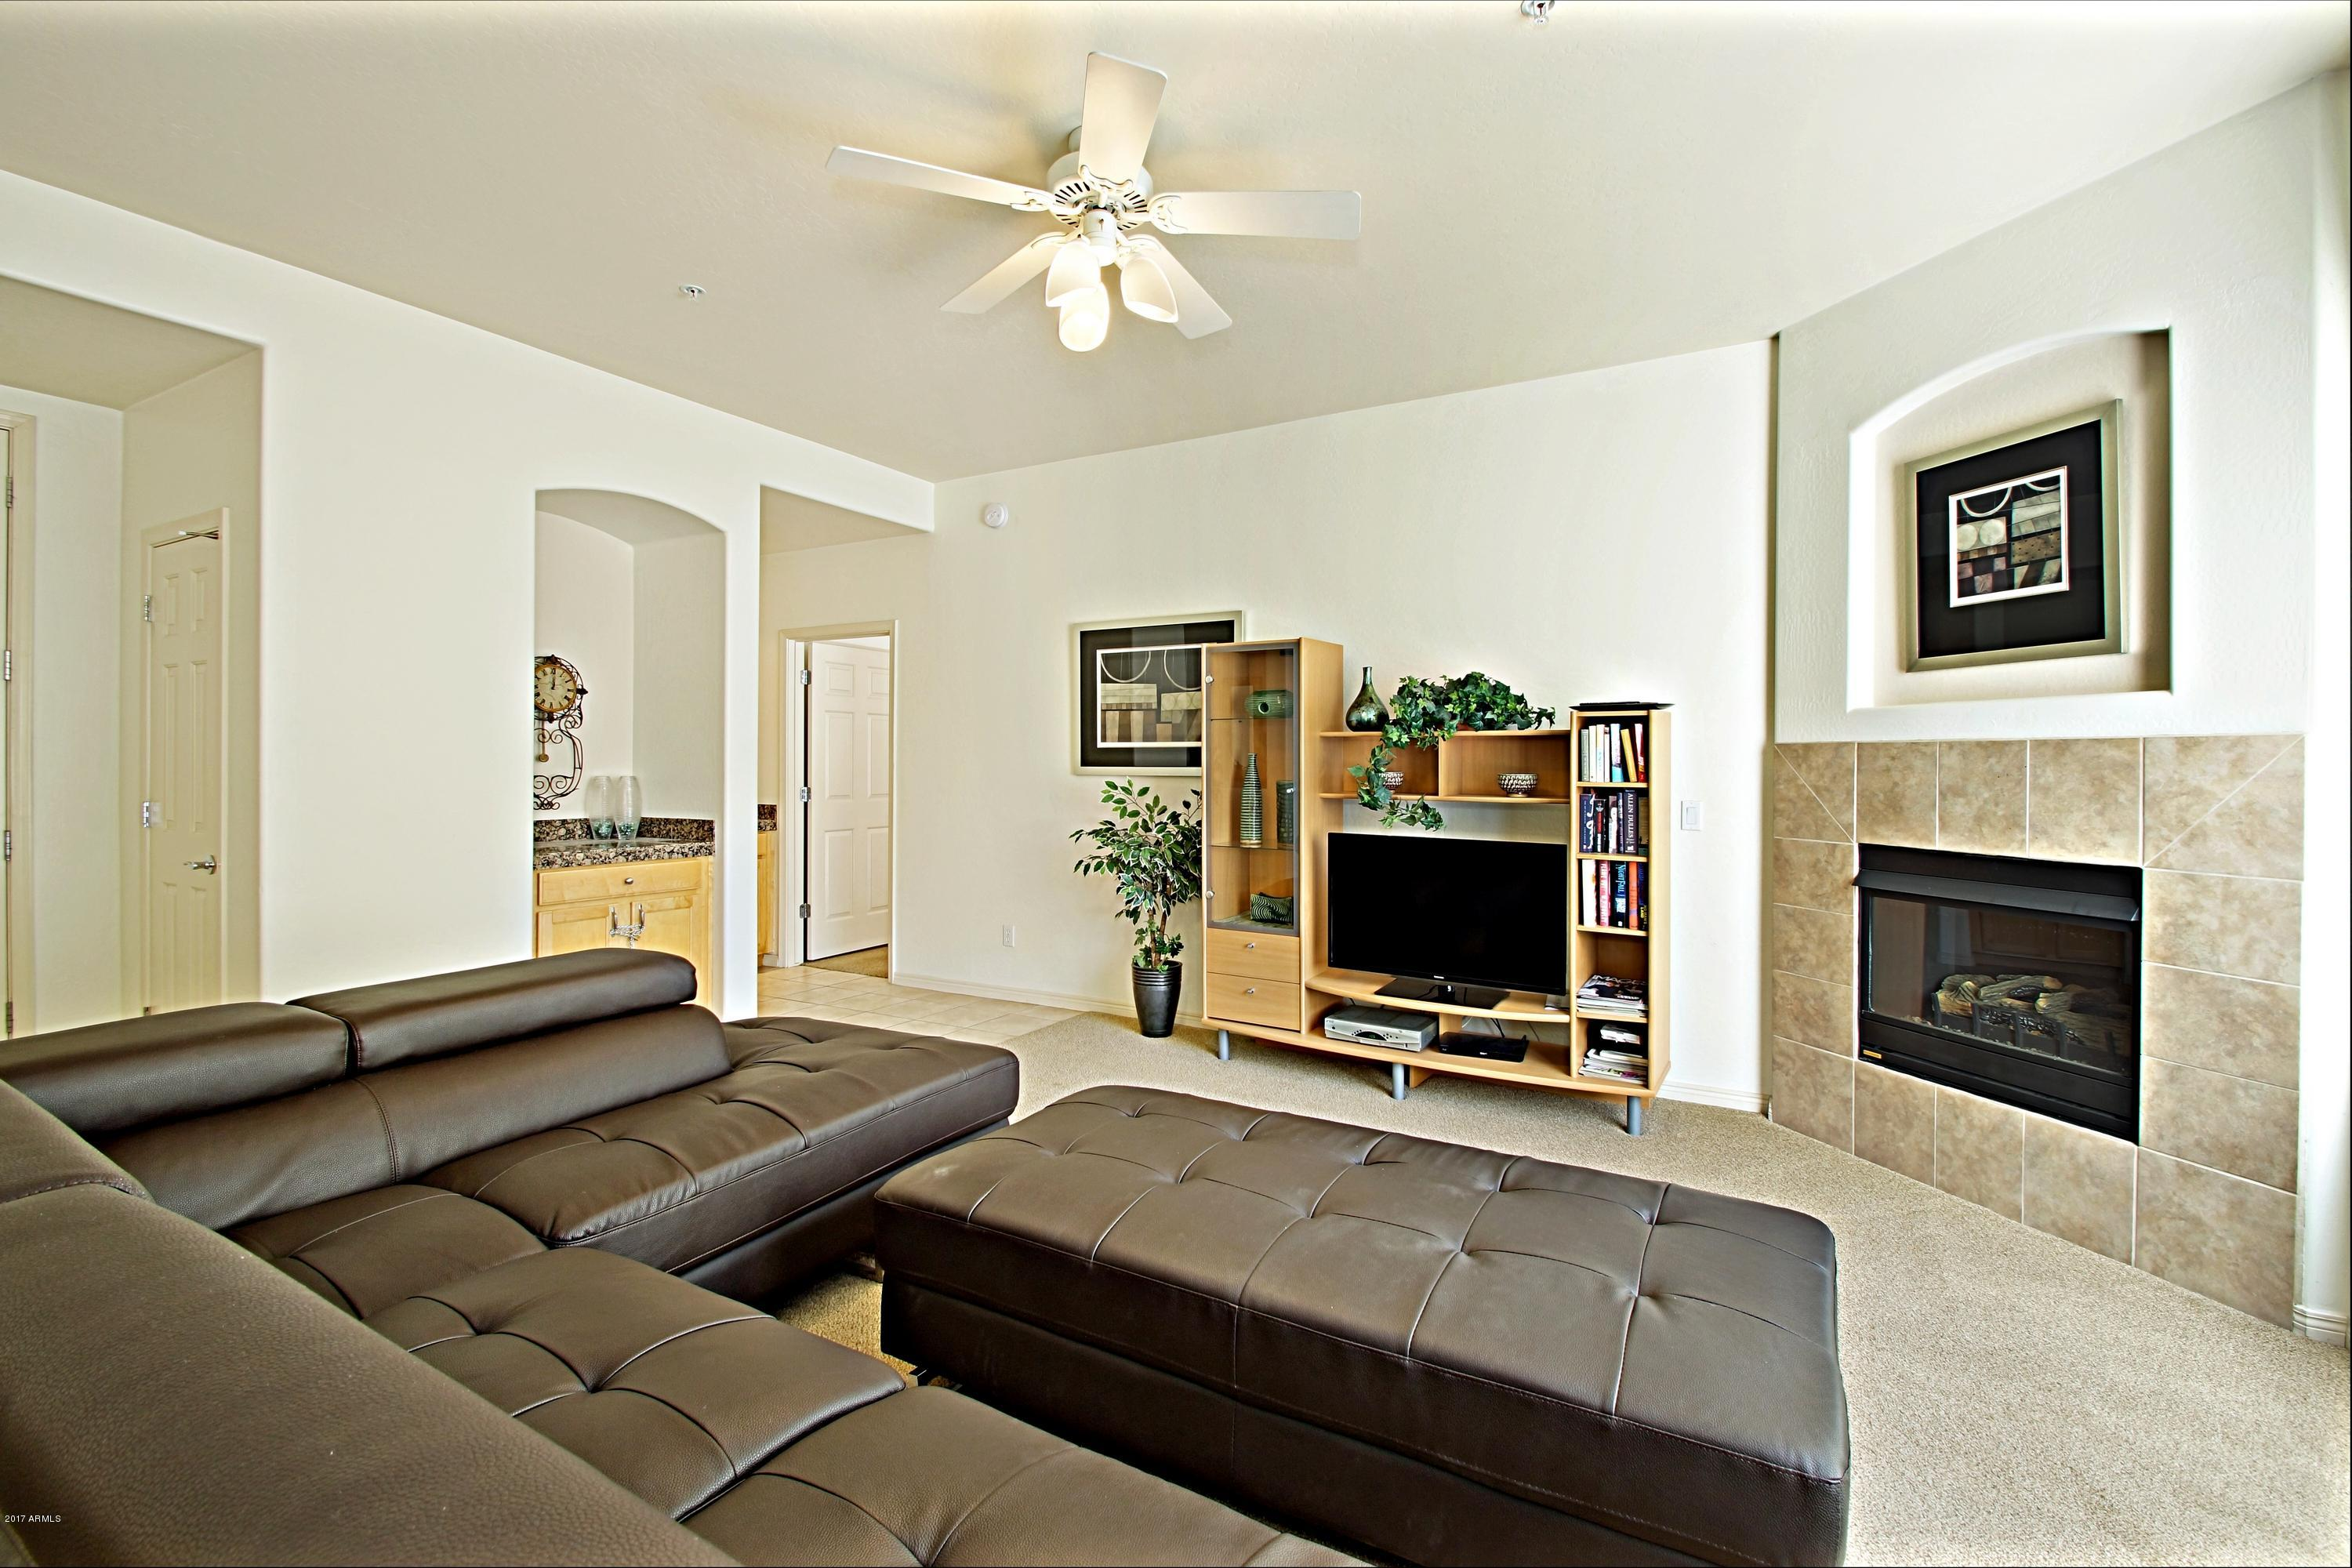 19550 N Grayhawk Drive, Unit 1053, Scottsdale AZ 85255 - Photo 2